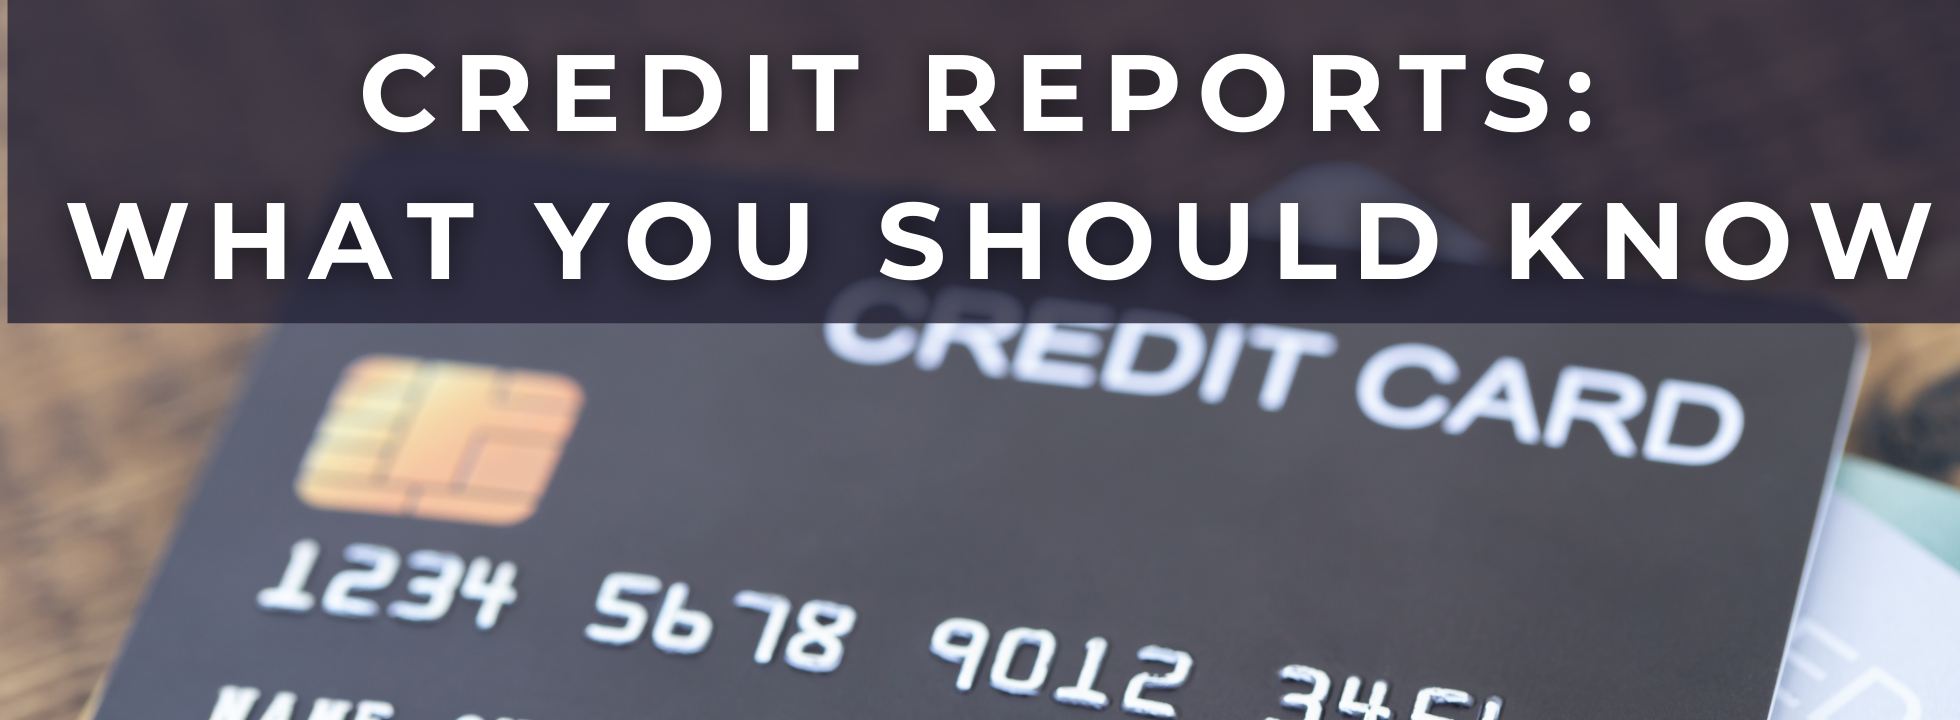 Credit reports_ What You SHould Know (1)